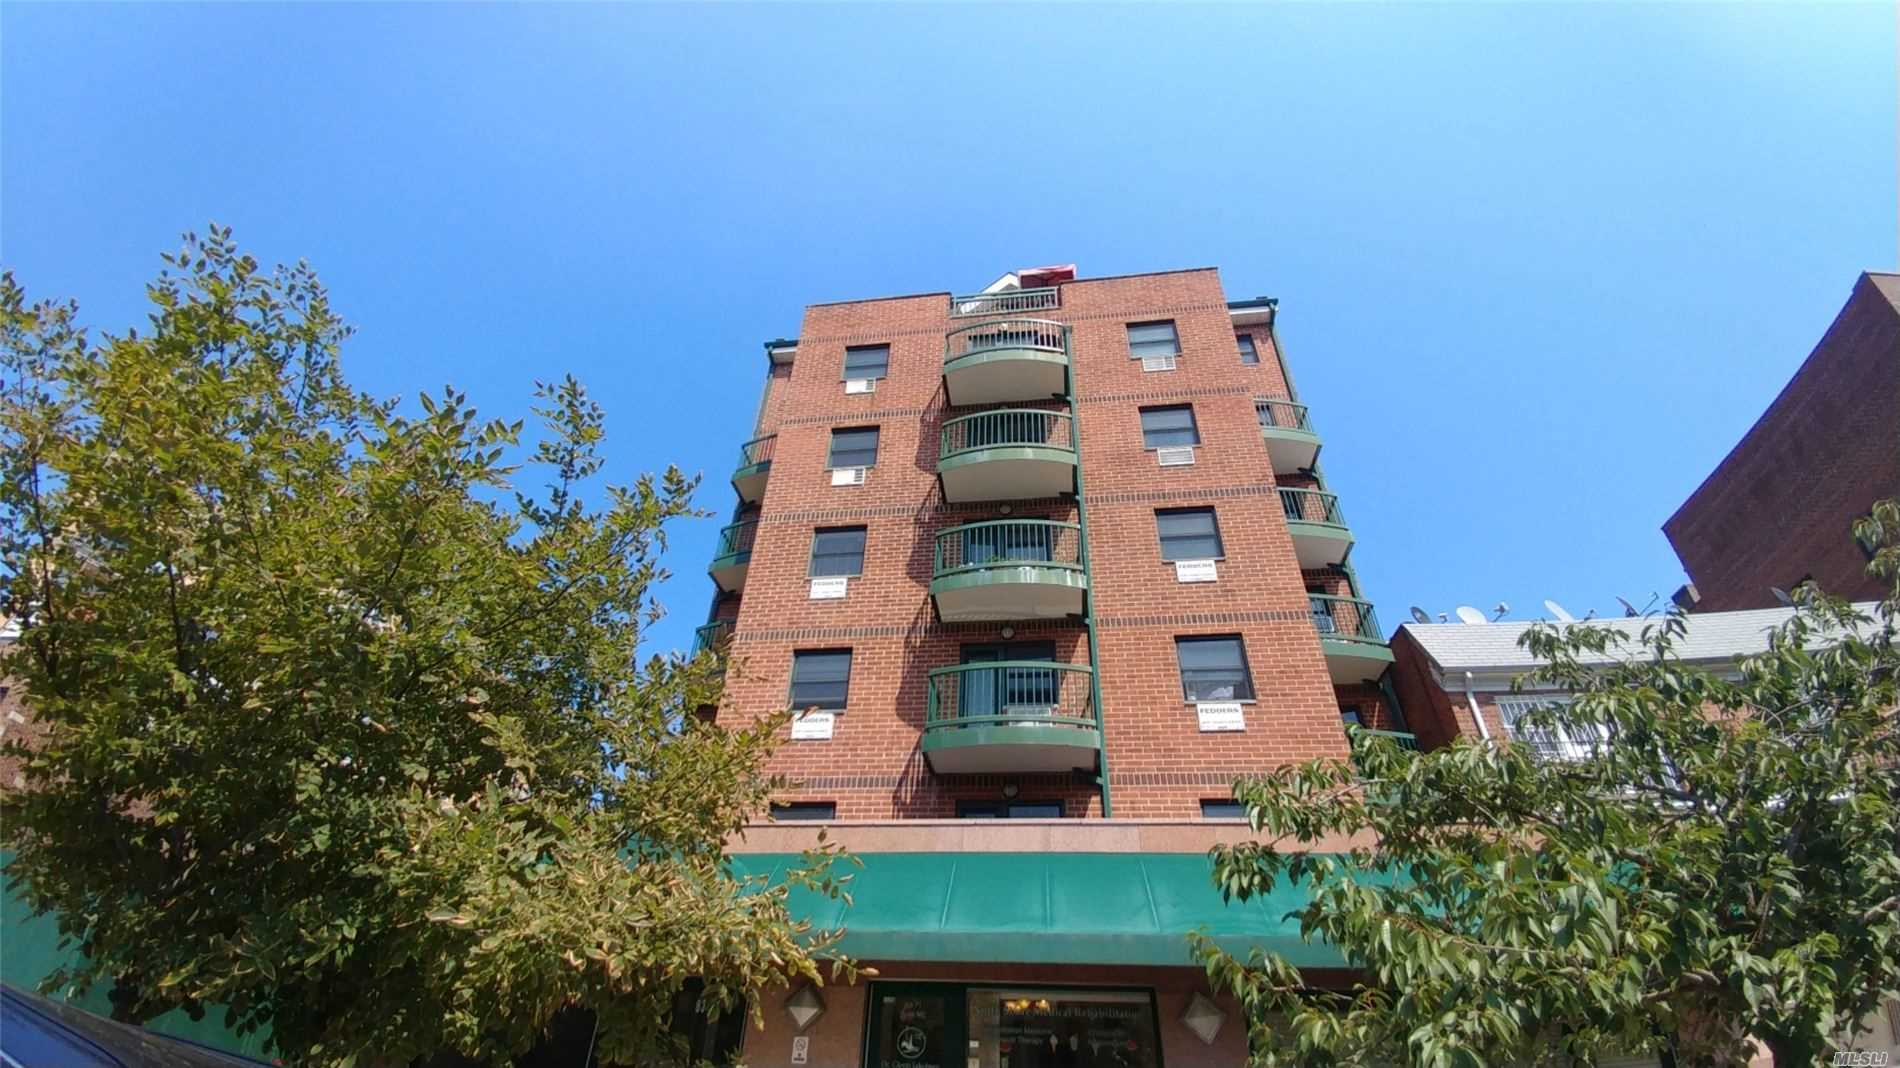 Property for sale at 83-71 116th Street # 6D, Kew Gardens NY 11415, Kew Gardens,  New York 11415